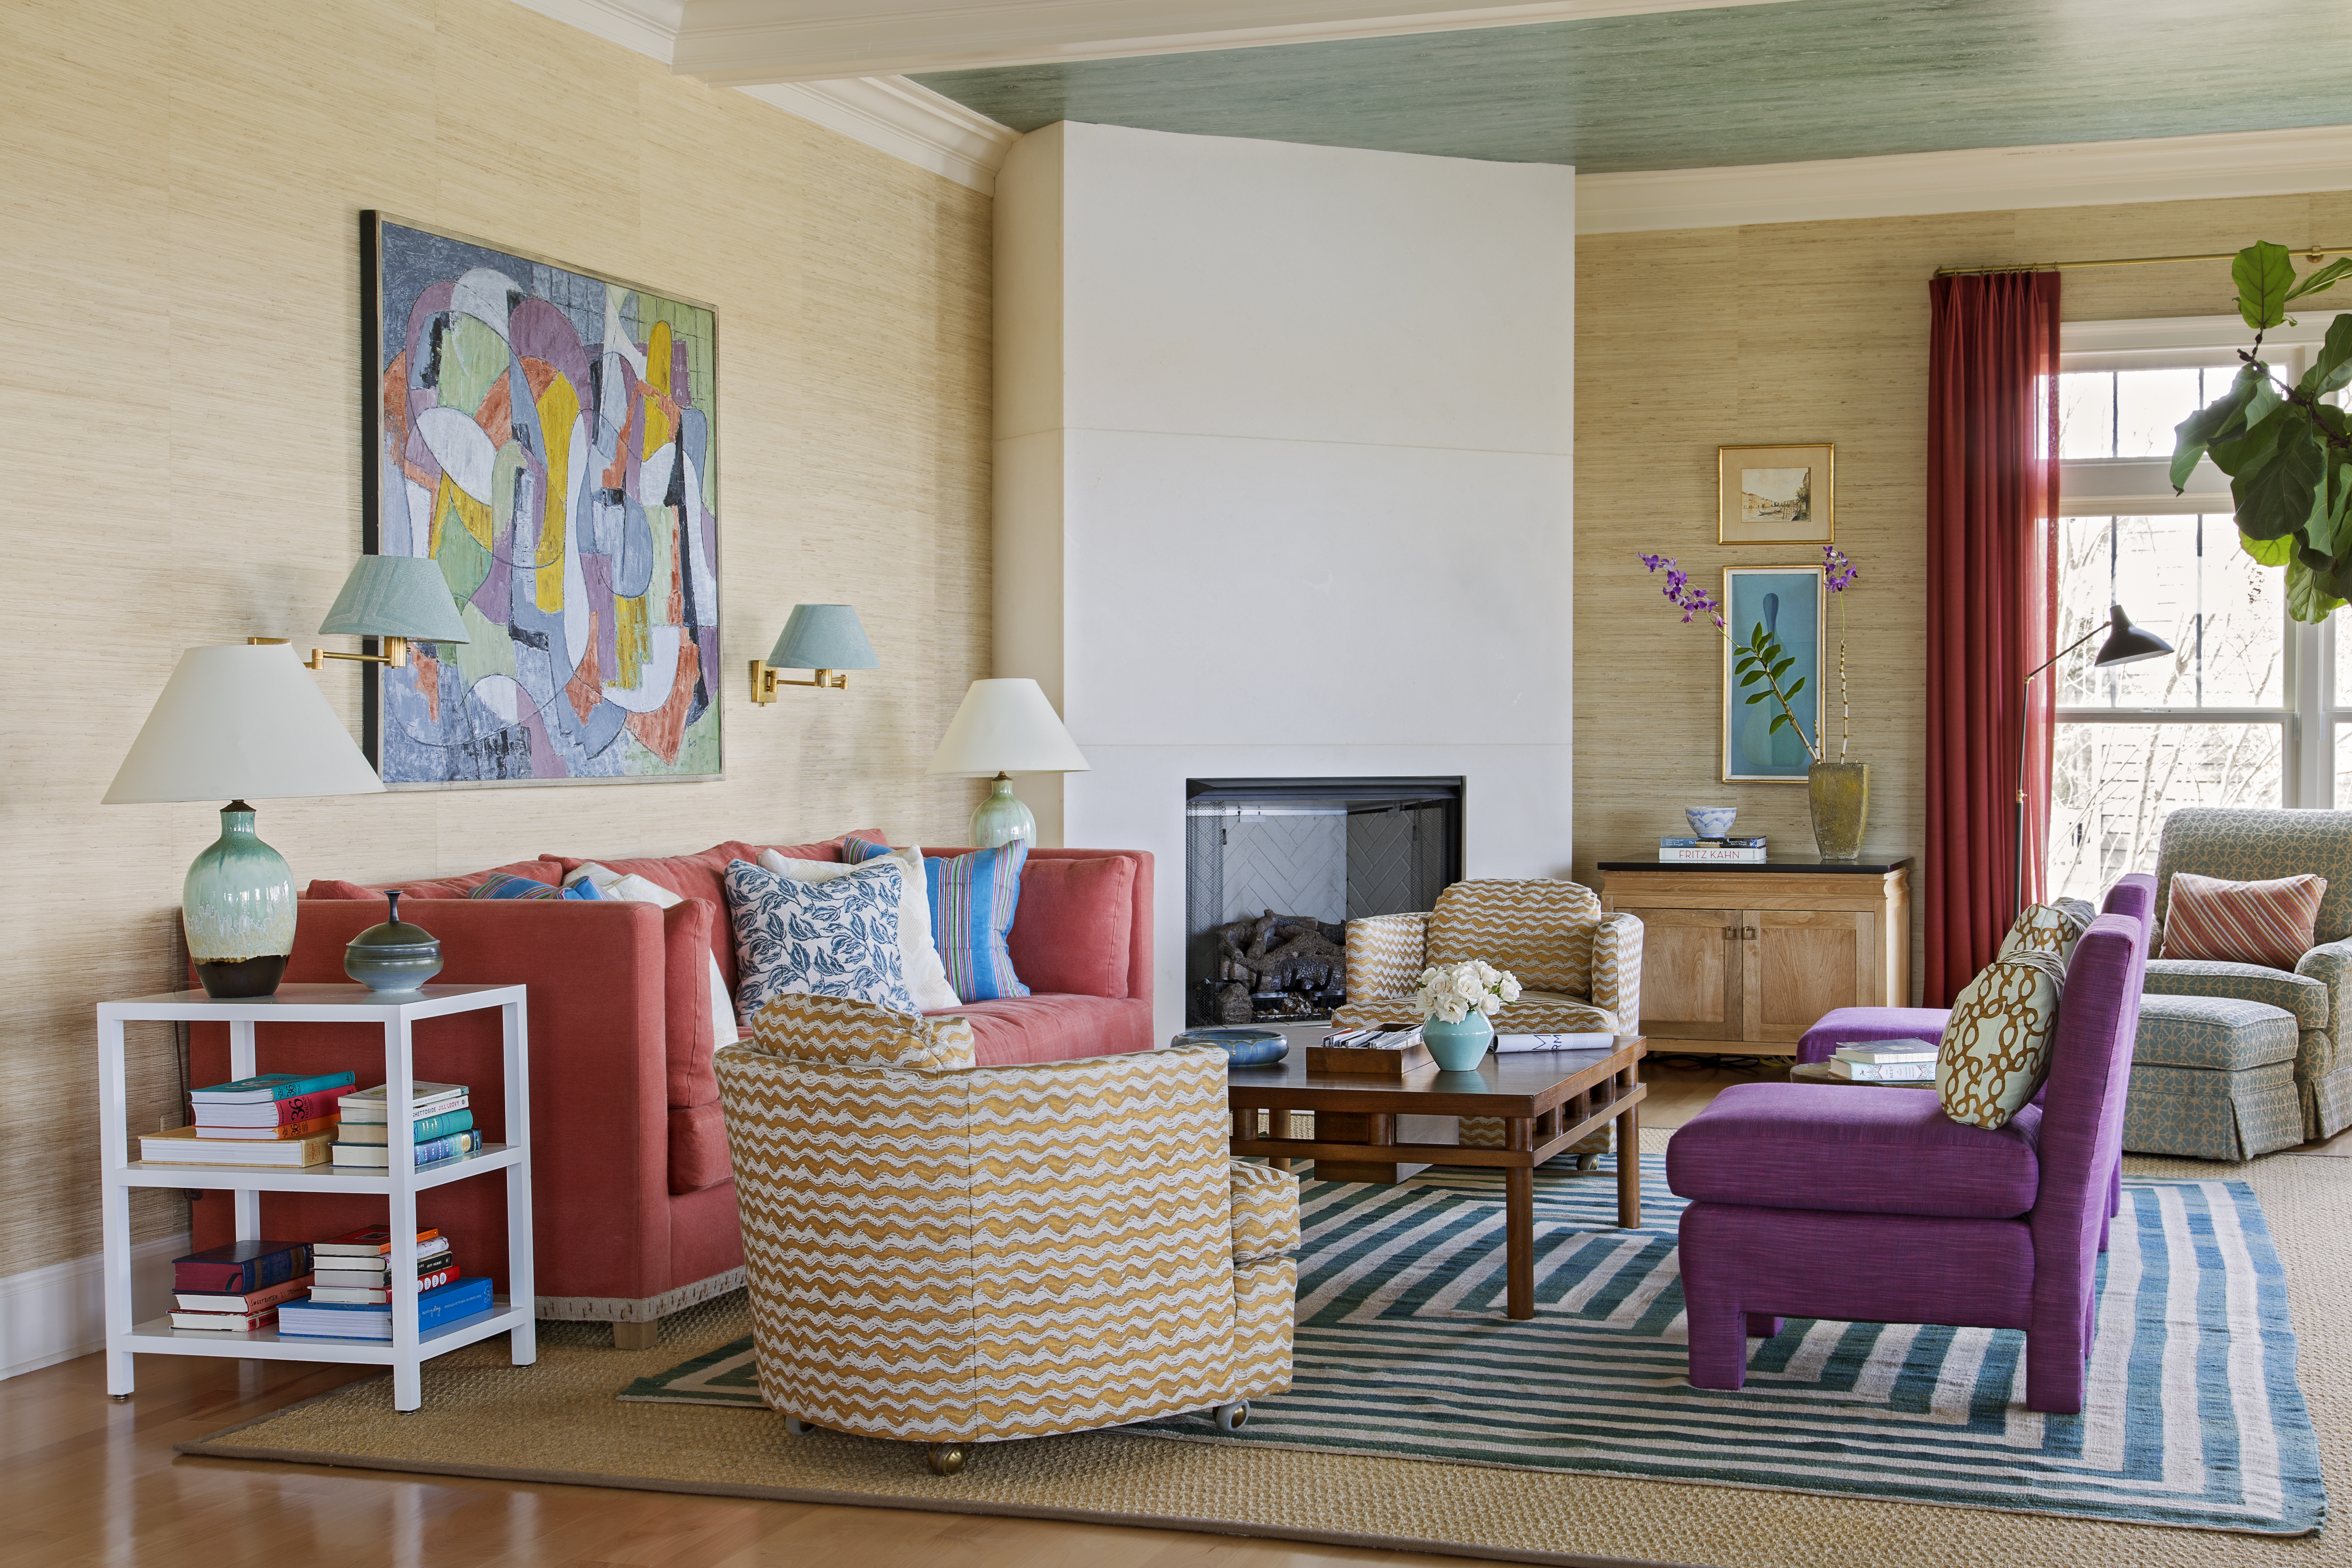 All eyes here are on the water, except for the occasional Netflix watcher. The Ufkeses resolved their difference of opinion on whether to have a TV in the living room by tucking a retractable screen in the custom cabinet by the fireplace, designed thanks to Phil's engineering finesse.